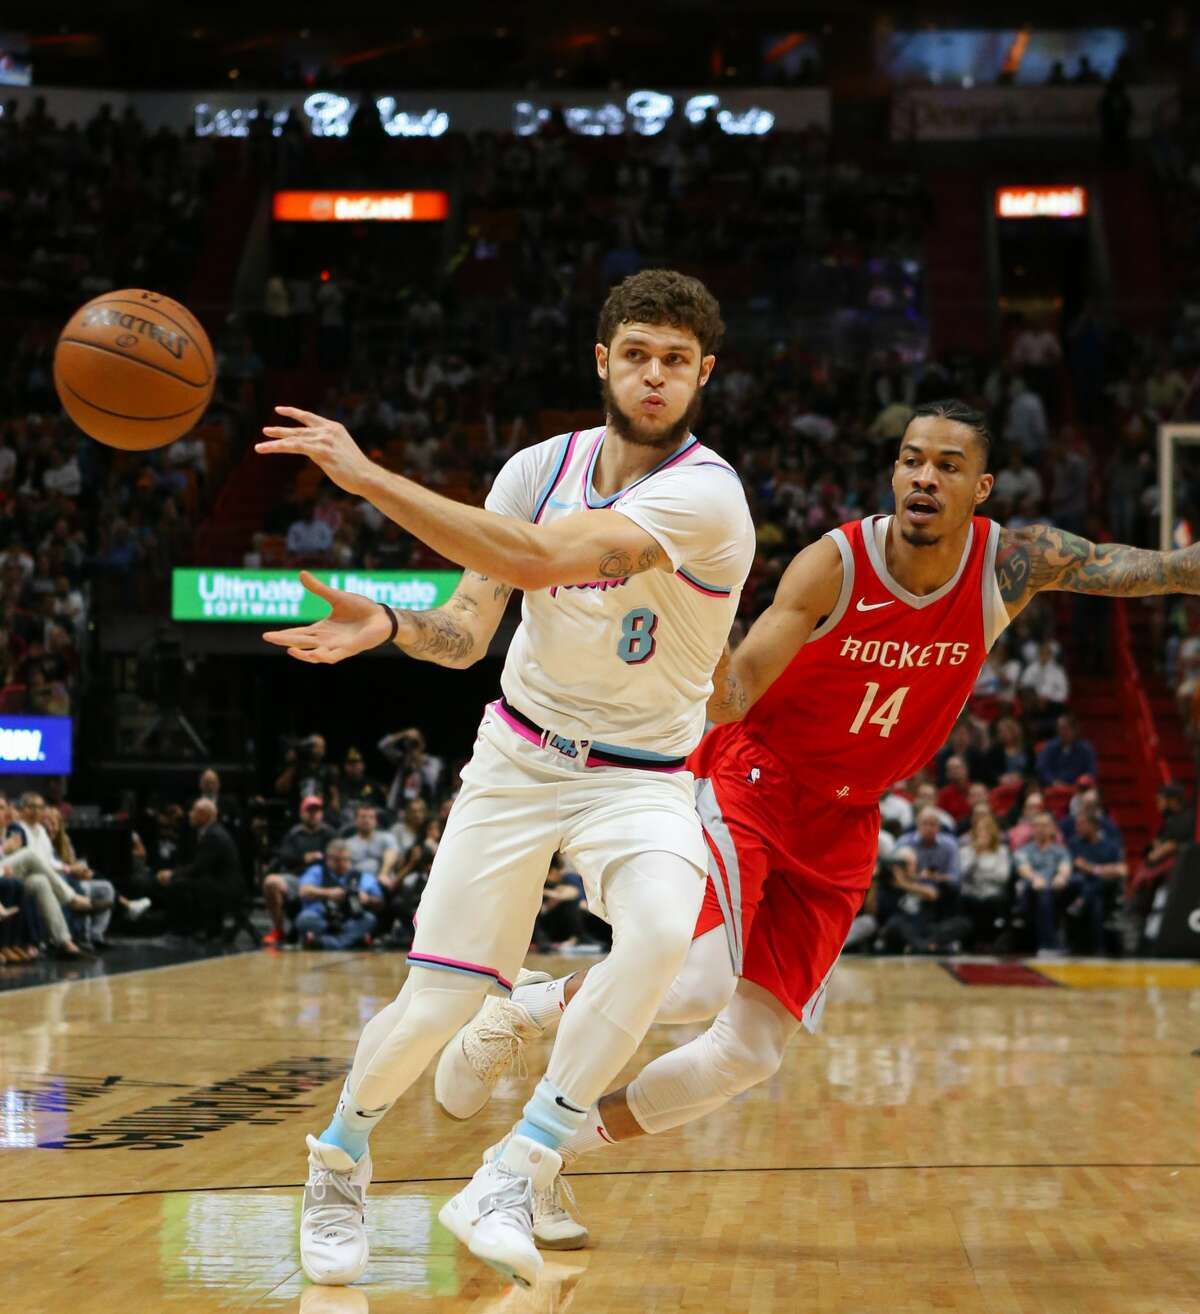 The Miami Heat's Tyler Johnson passes the ball away from the Houston Rockets' Gerald Green, right, during the first quarter at the AmericanAirlines Arena in Miami on Wednesday, Feb. 7, 2018. (David Santiago/El Nuevo Herald/TNS)